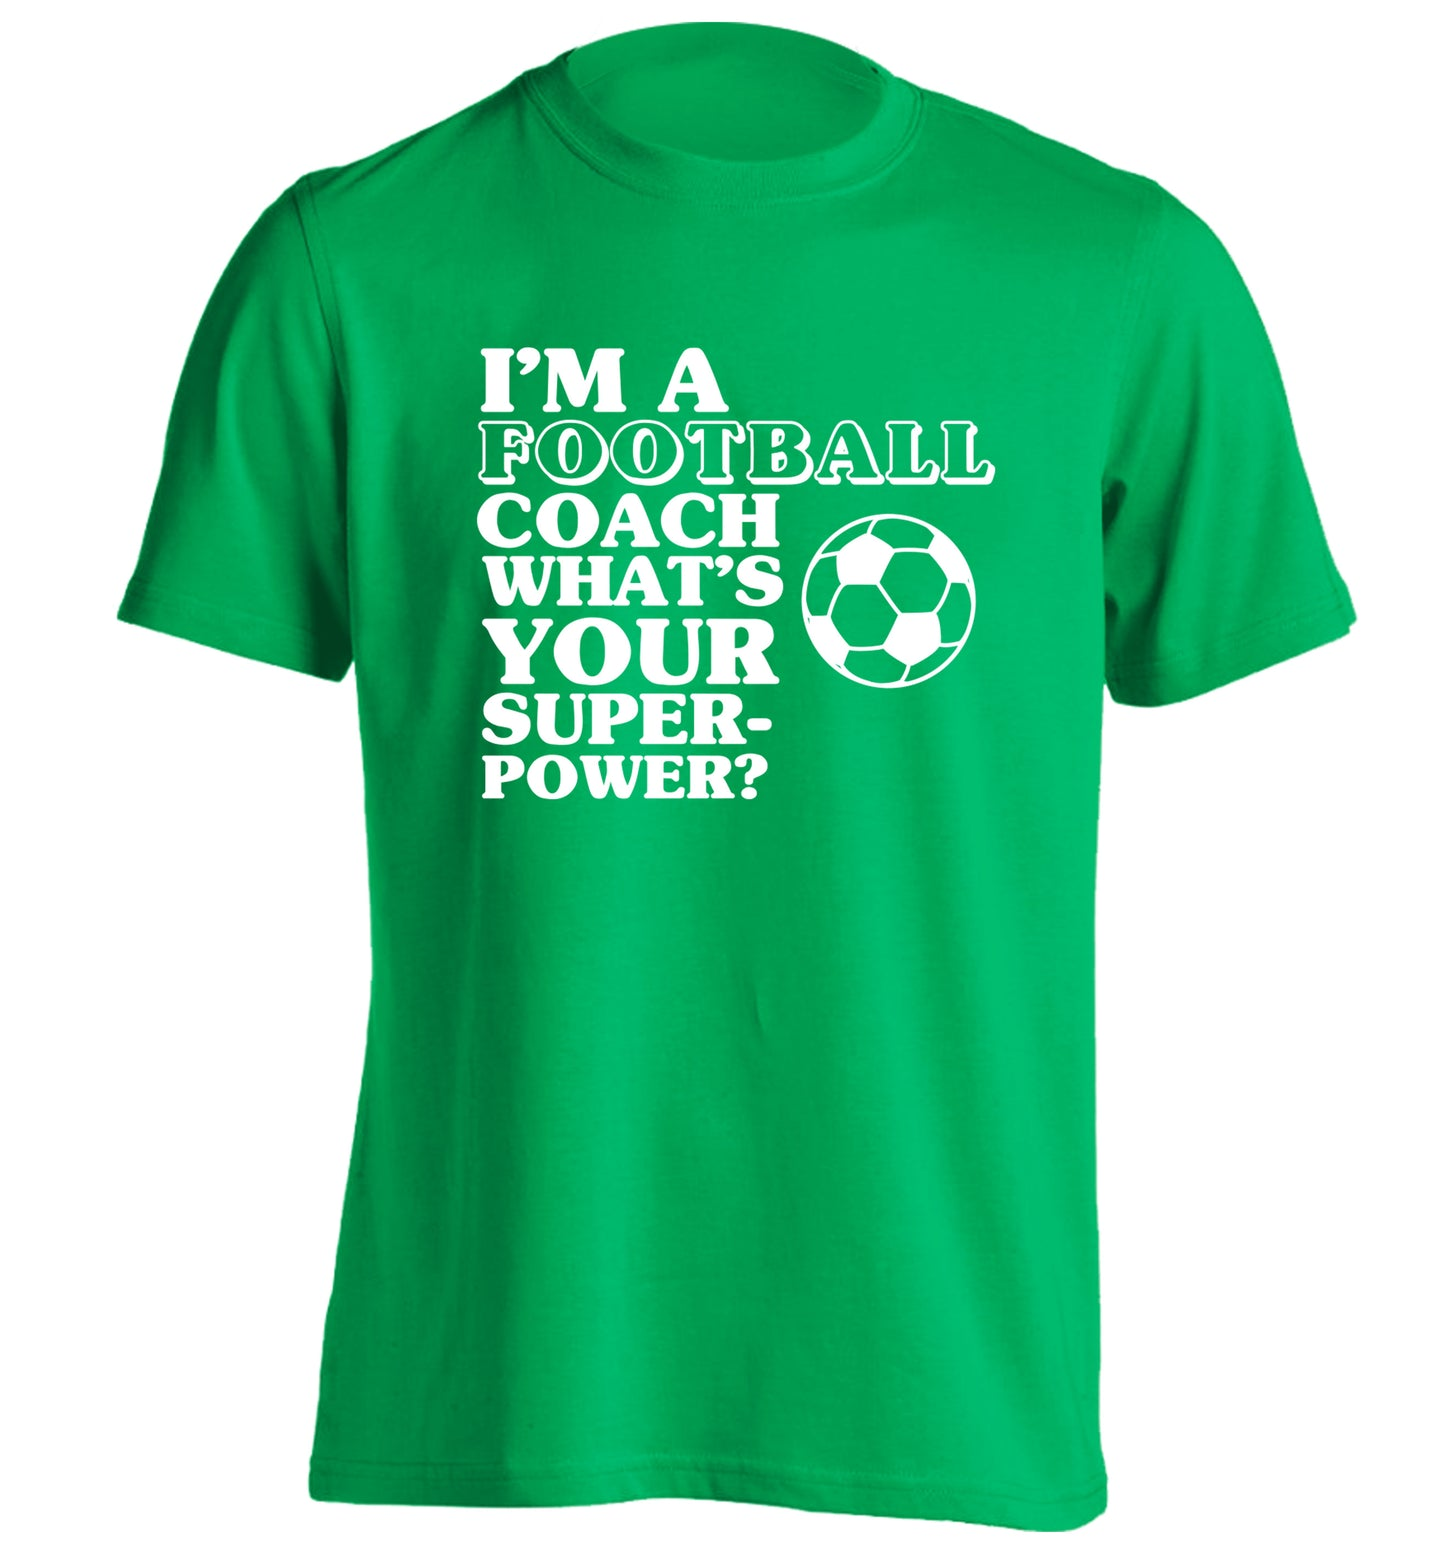 I'm a football coach what's your superpower? adults unisexgreen Tshirt 2XL